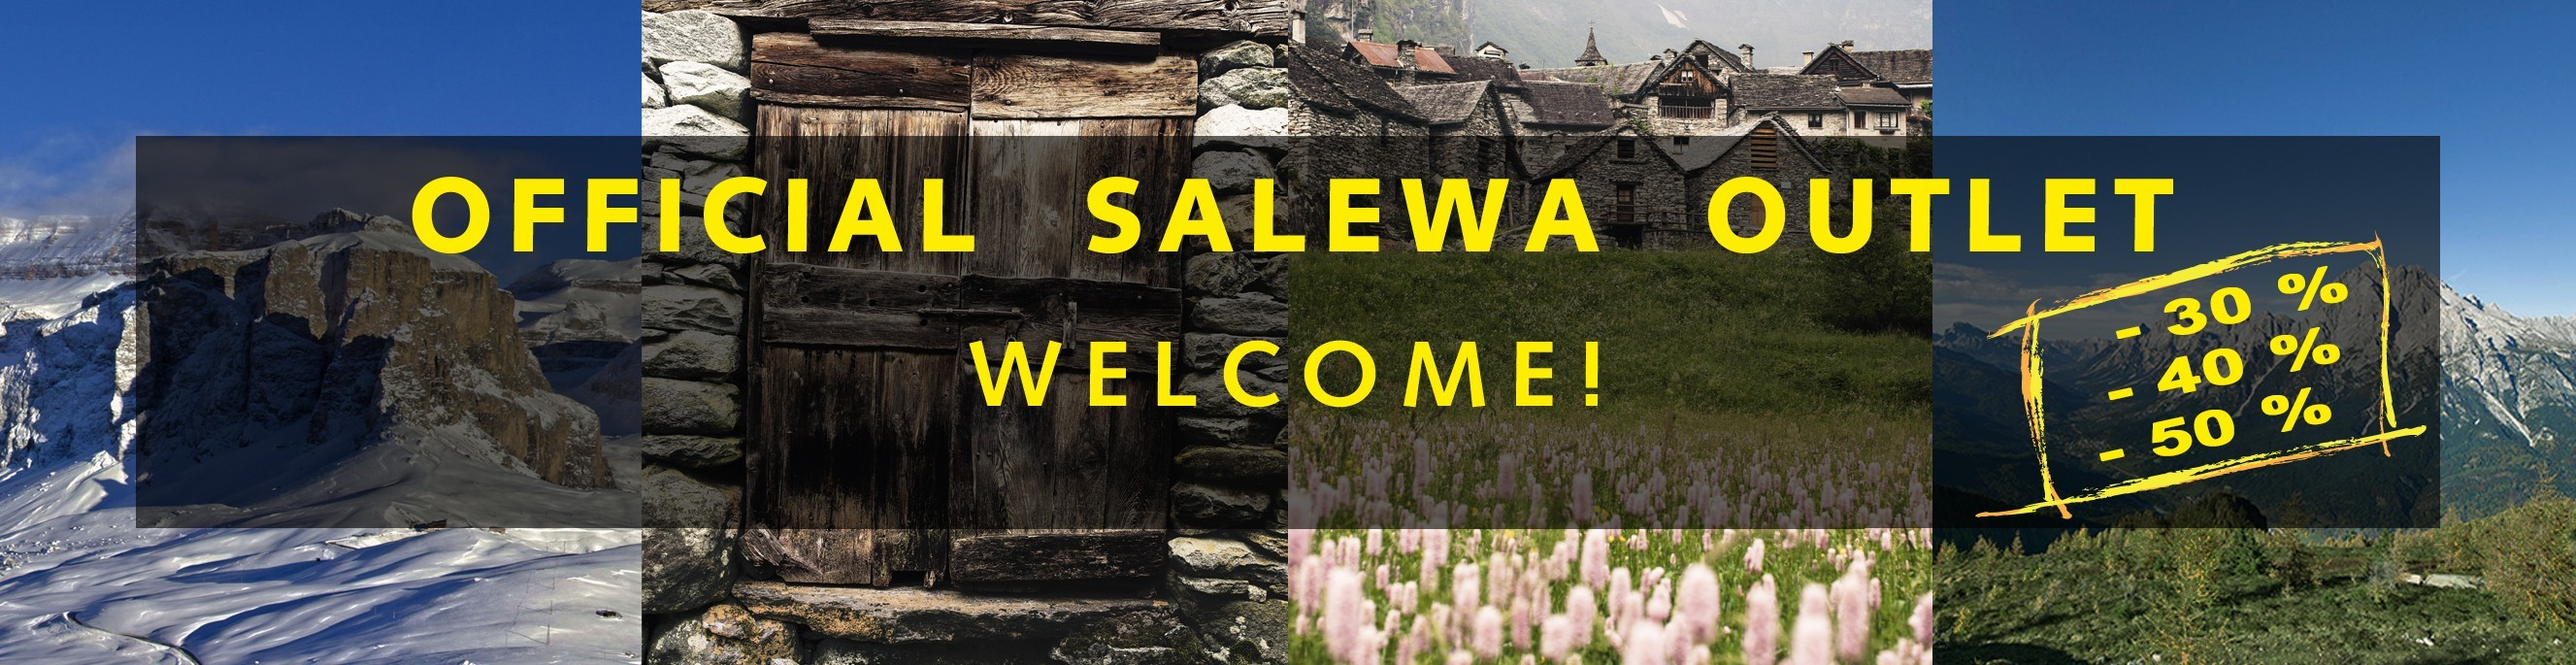 Official Salewa Outlet -30% -40% -50%